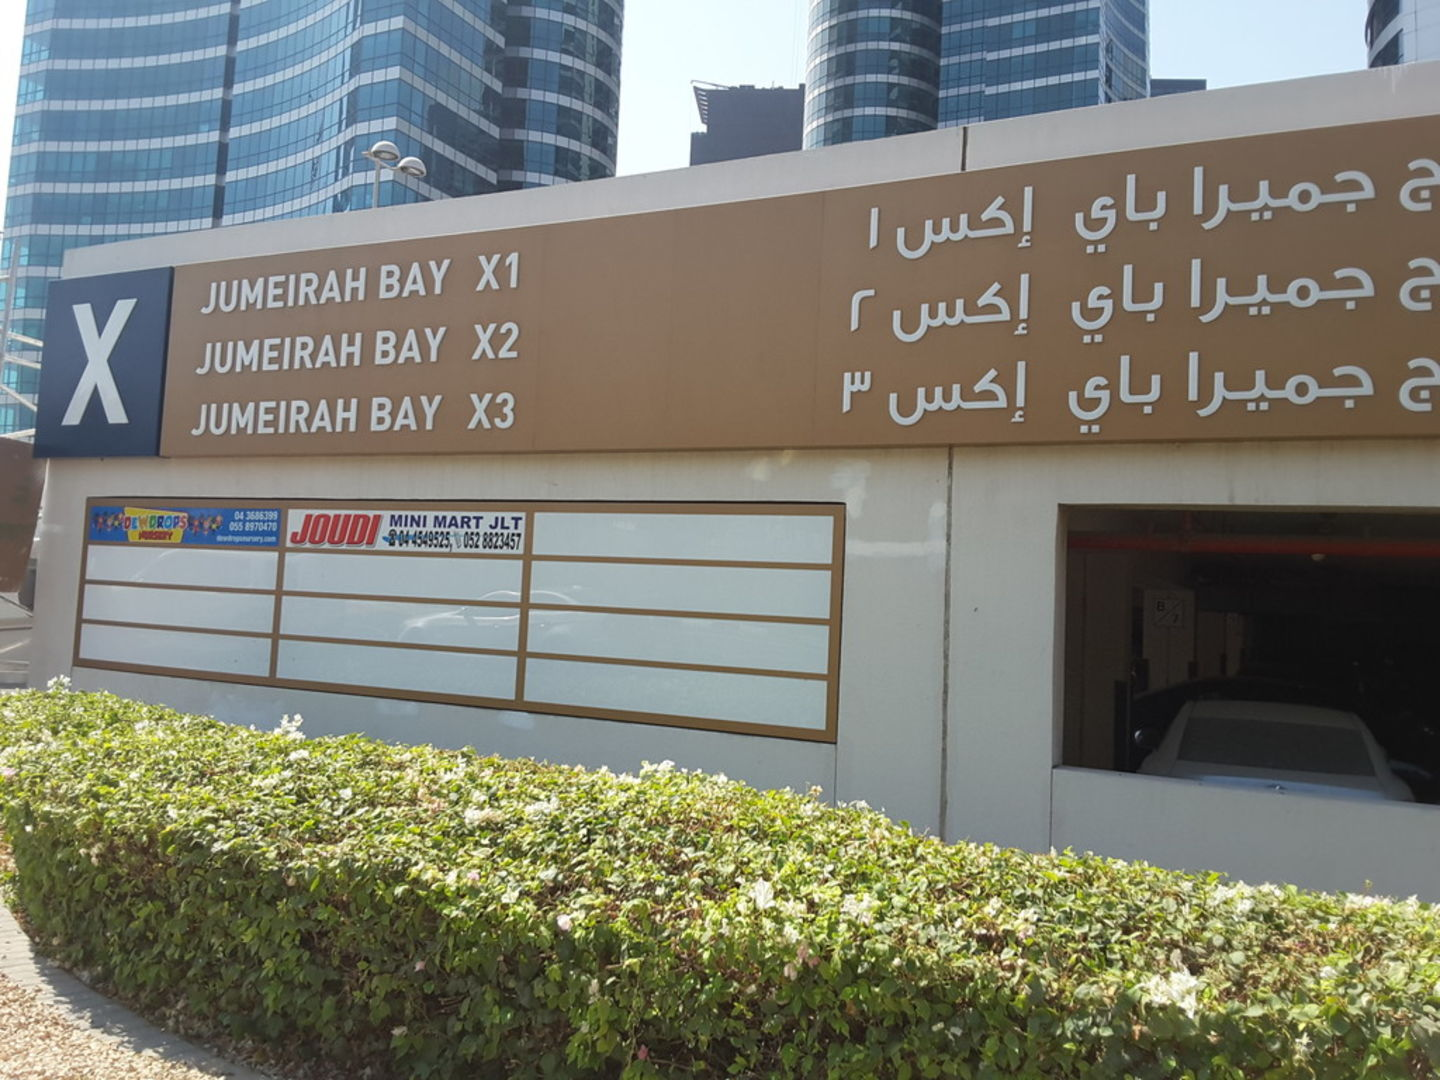 HiDubai-business-baker-tilly-finance-legal-financial-services-jumeirah-lake-towers-al-thanyah-5-dubai